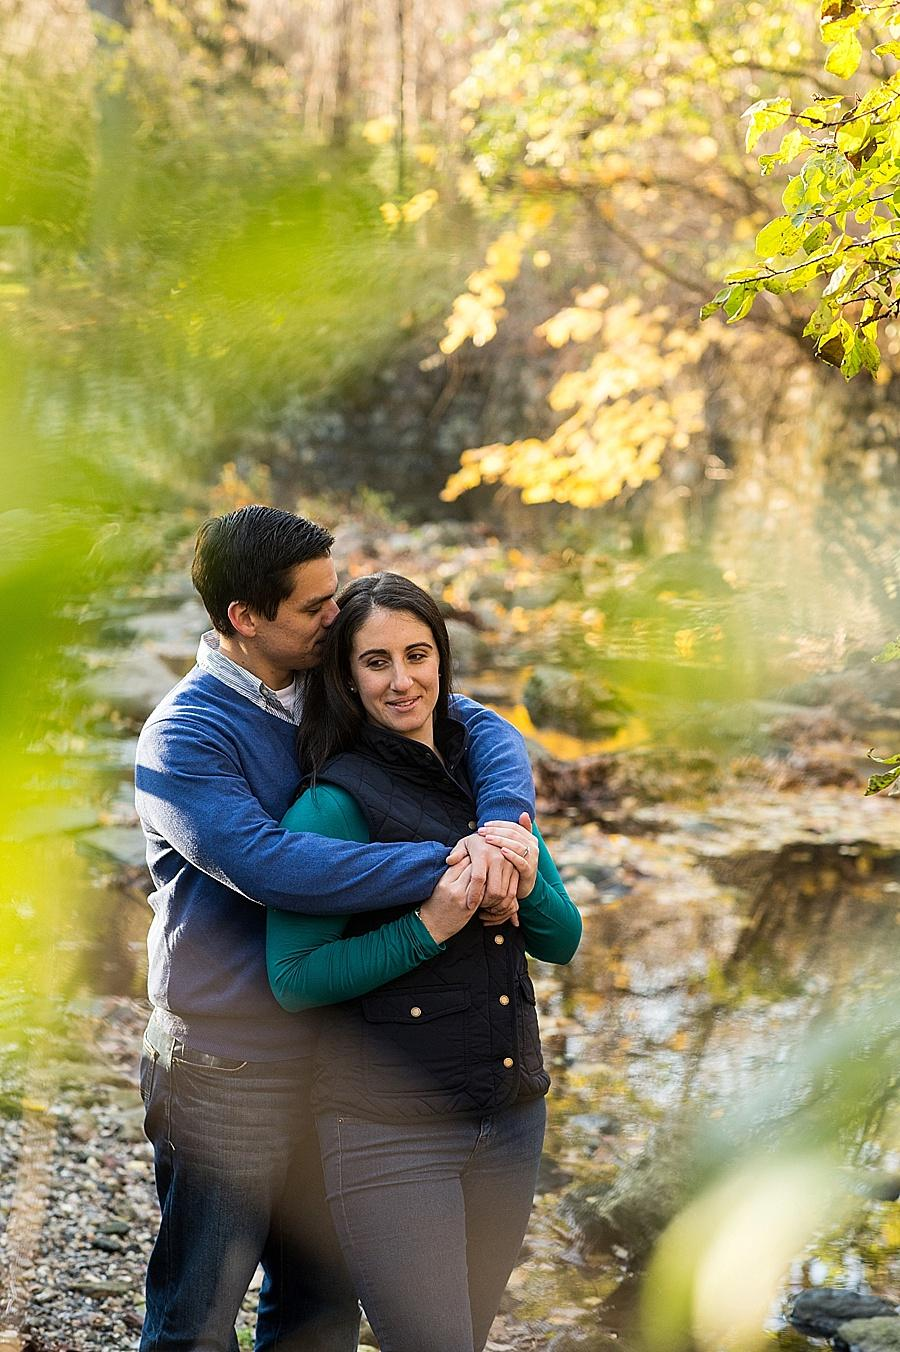 melissa-kelly-philadelphia-engagement-photo-14